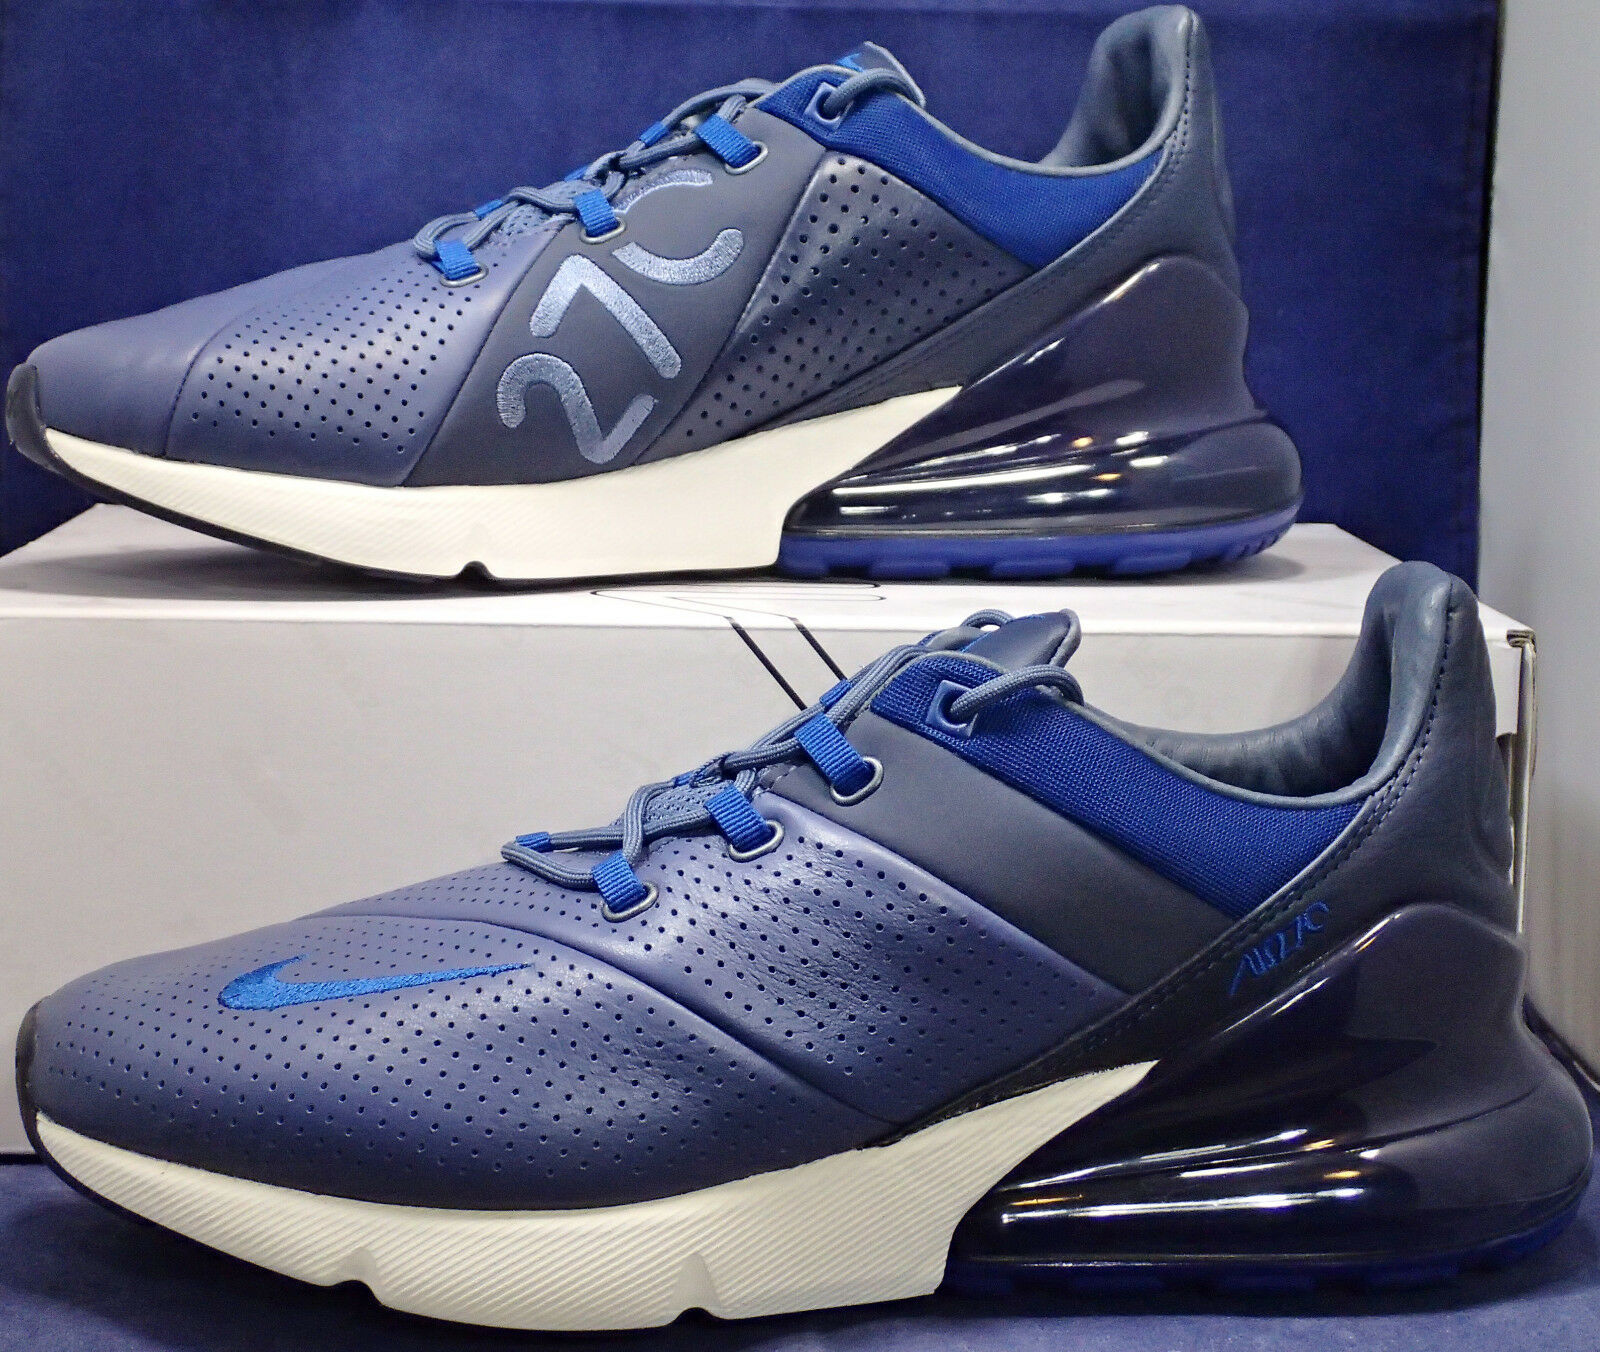 Nike Air Max 270 Premium Leather Diffused bluee Gym bluee Sail SZ 13 (AO8283-400)